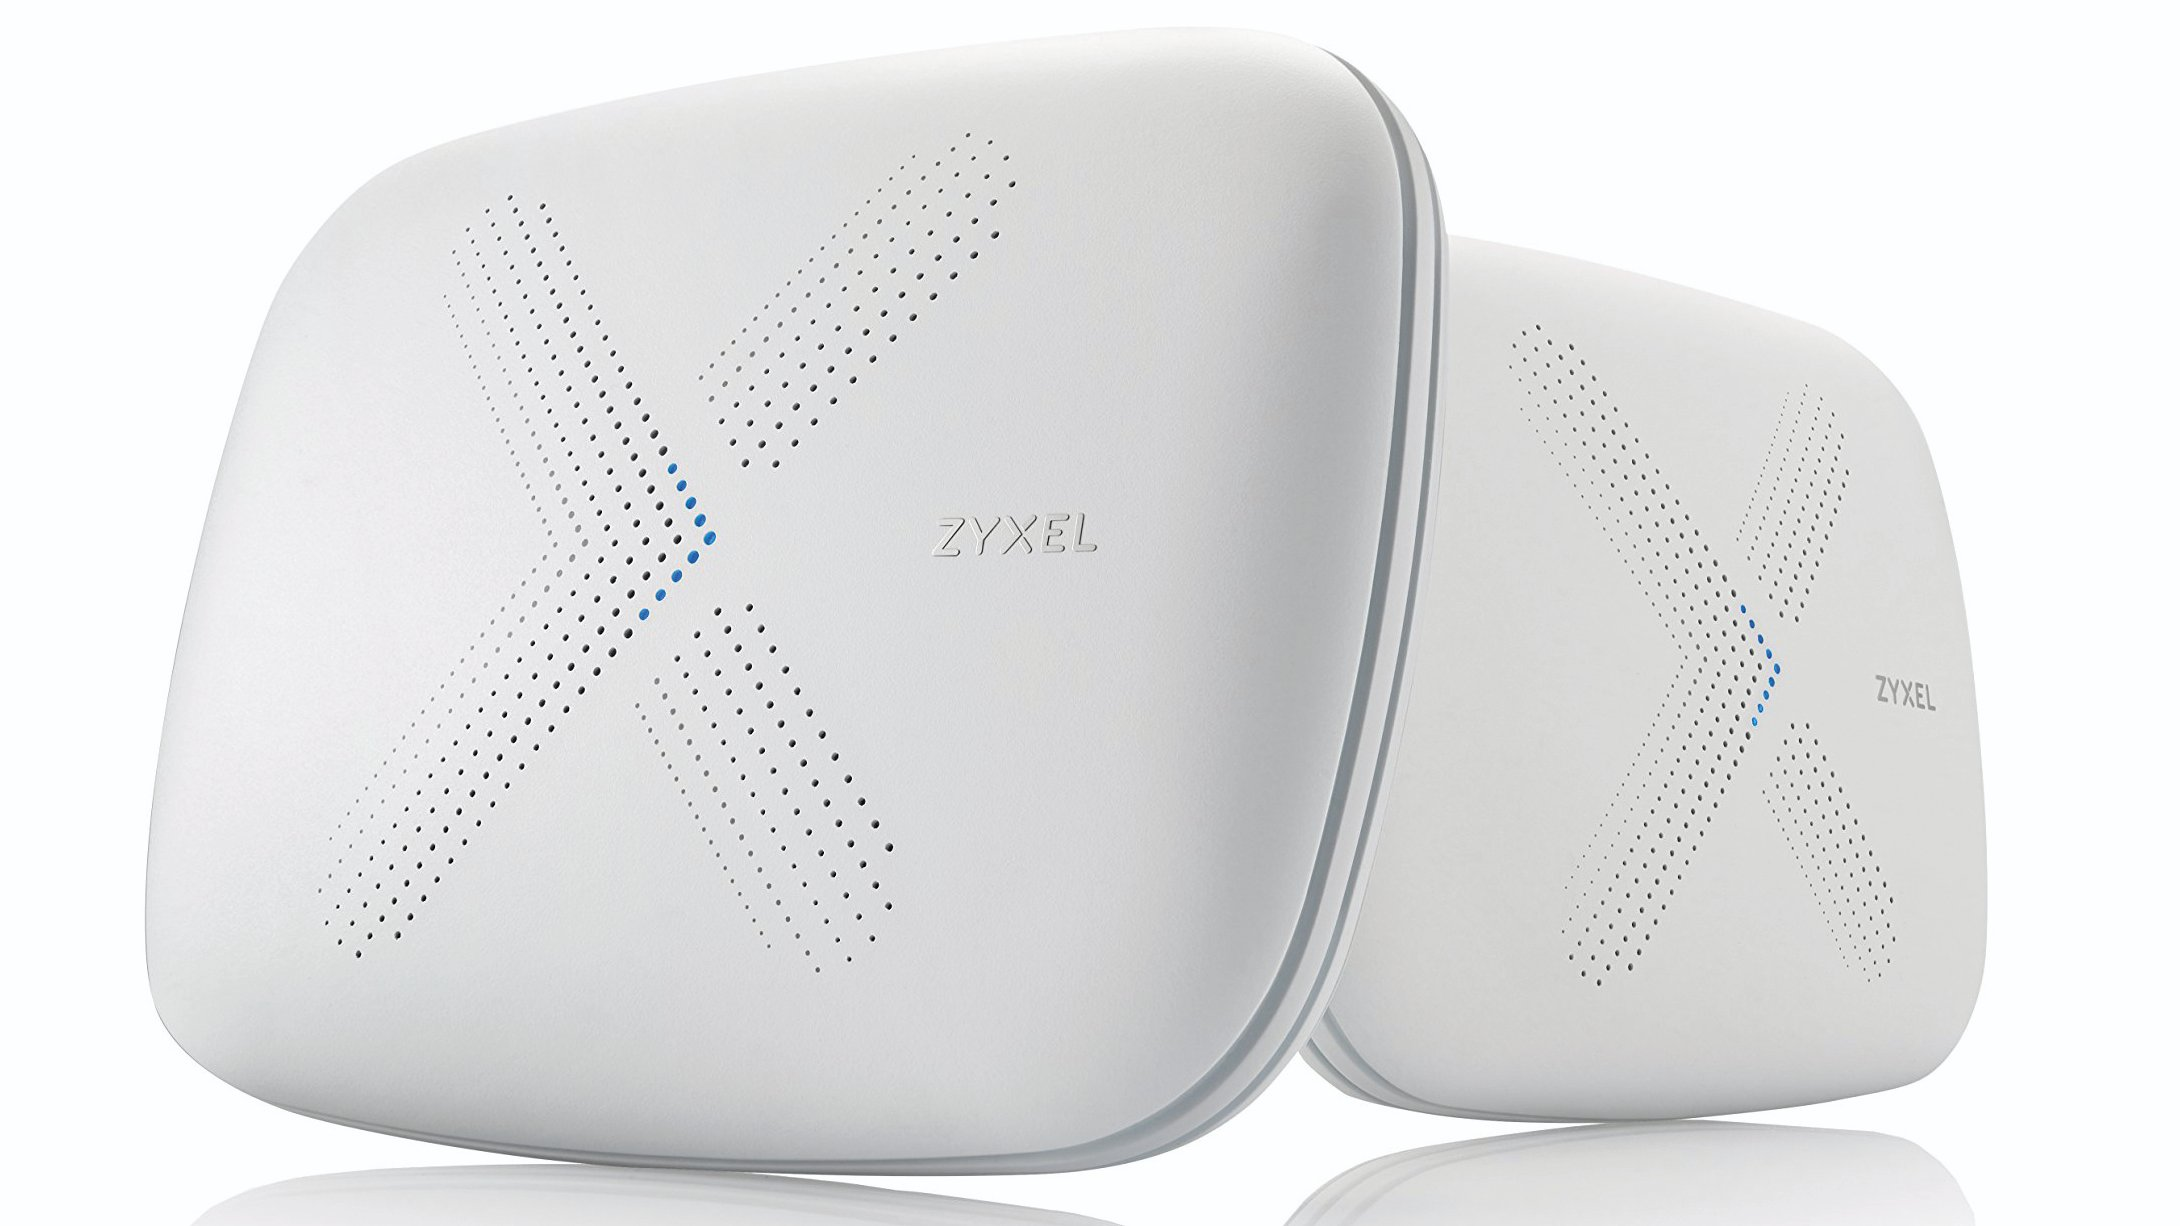 Zyxel Multy X review: Screamingly fast Wi-Fi over a wide area